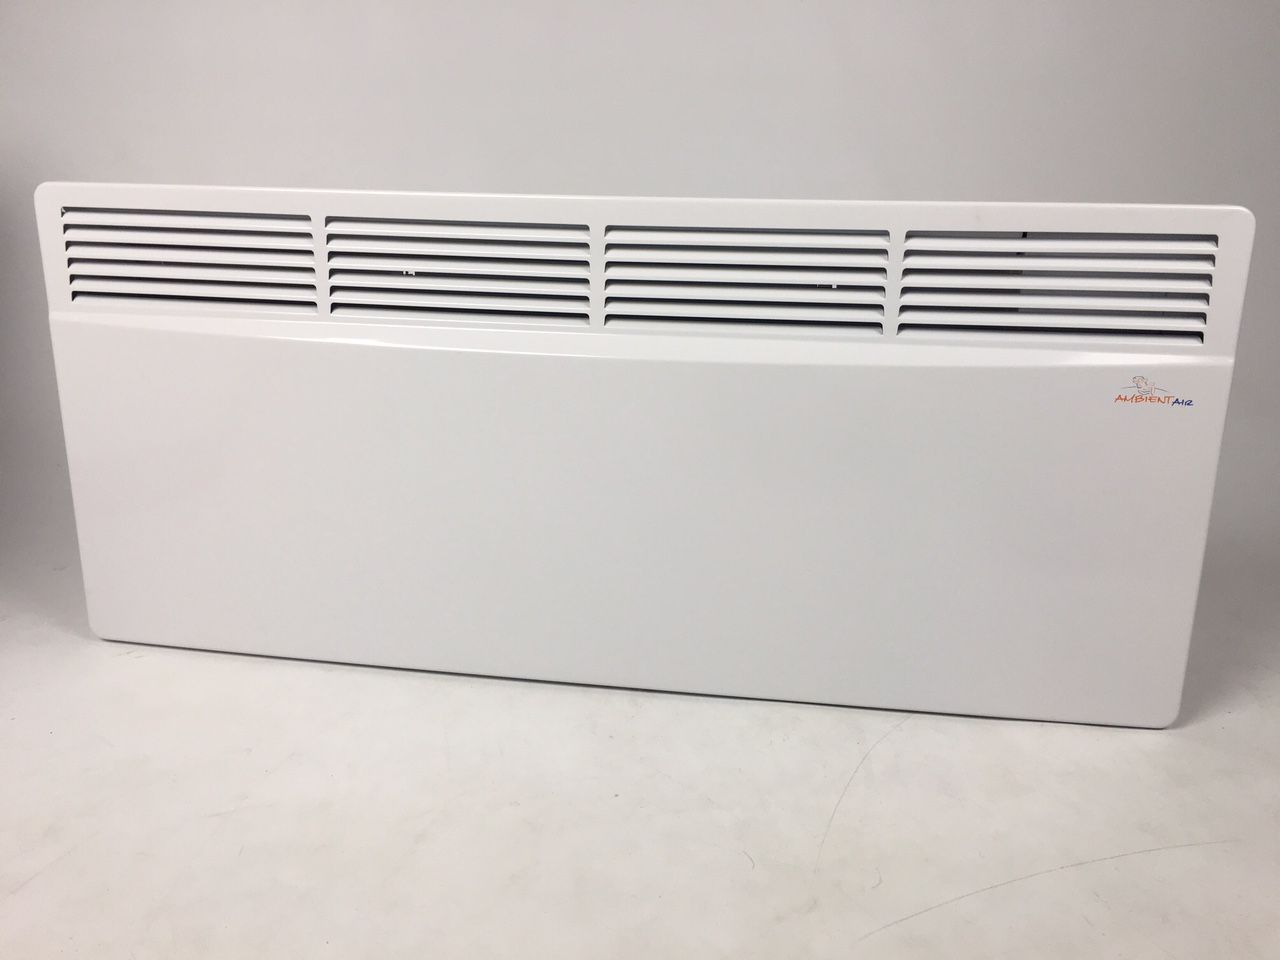 Ambient Air Convector Panel Heater Electric 2kw Floor